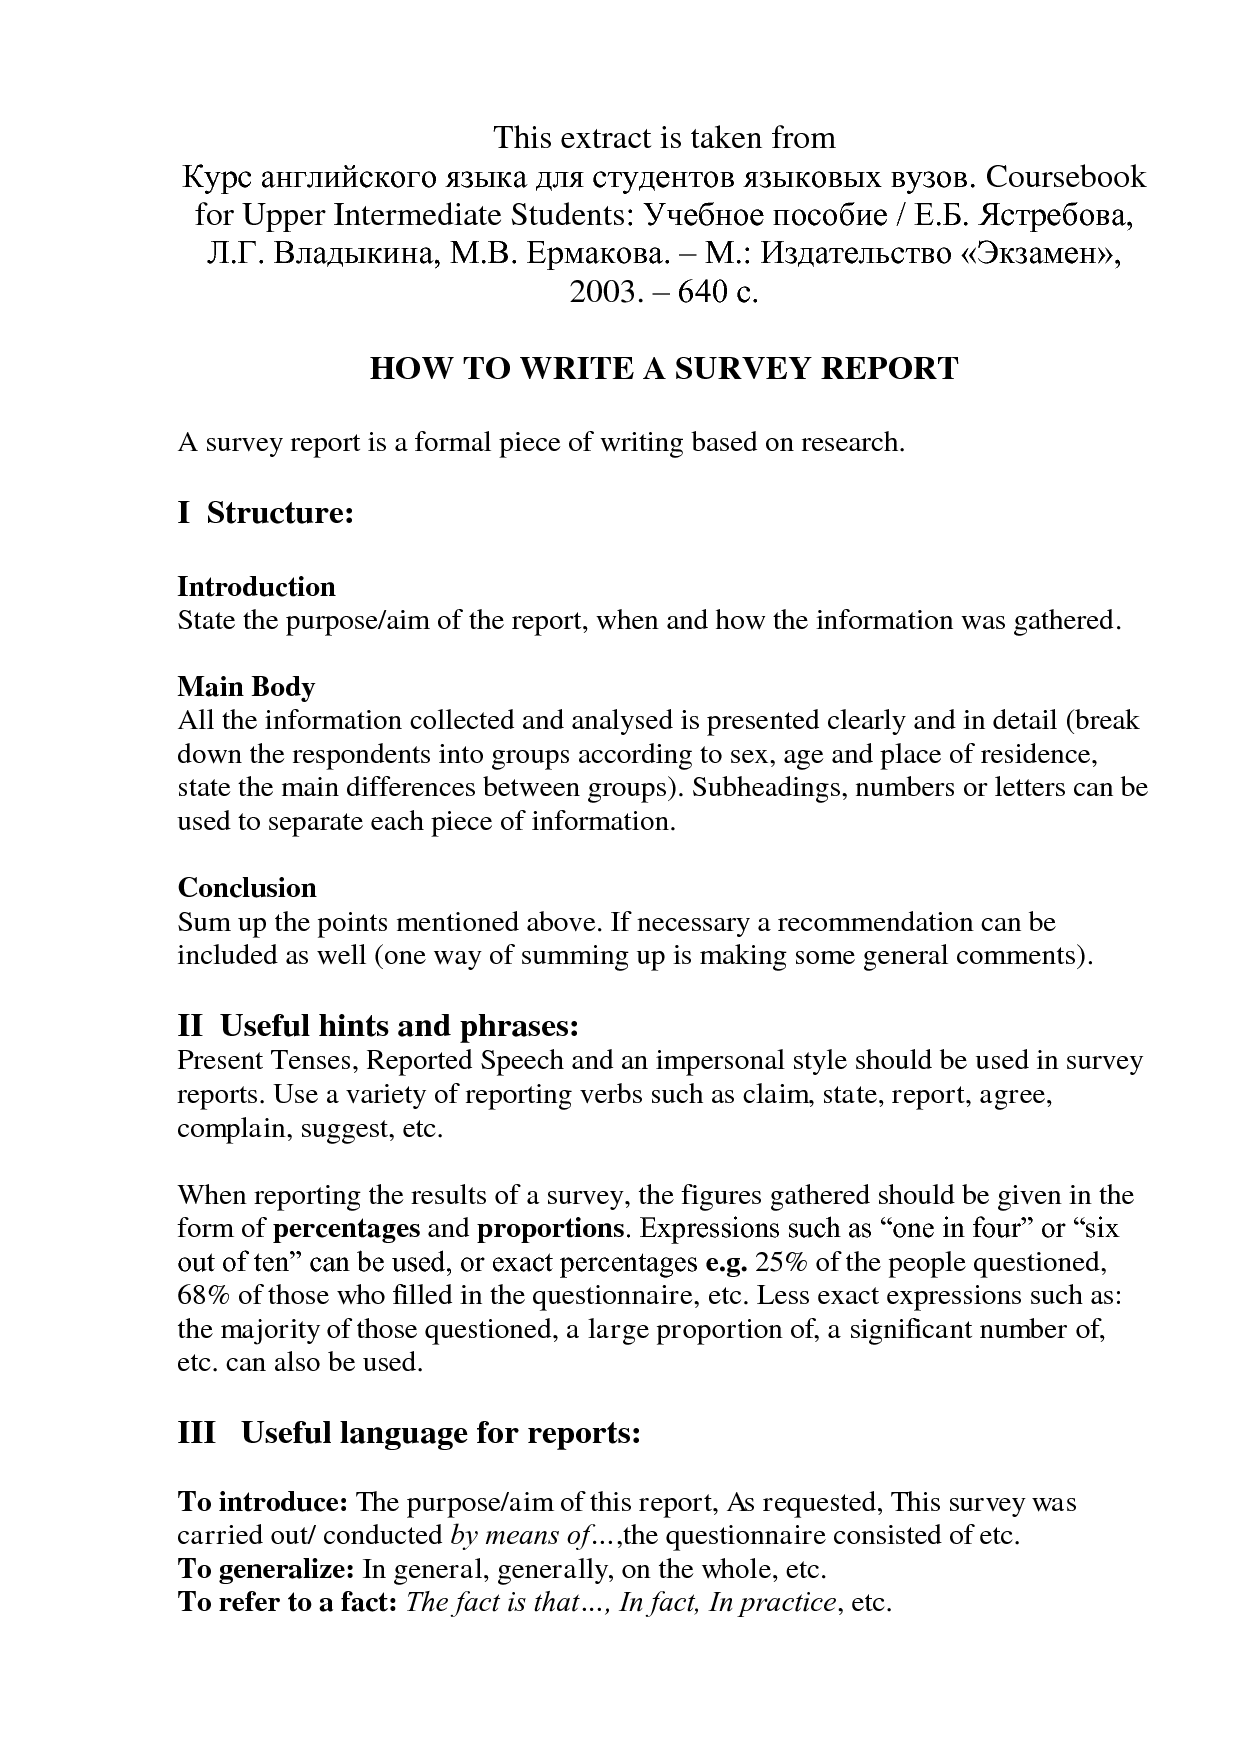 How to write a journal report